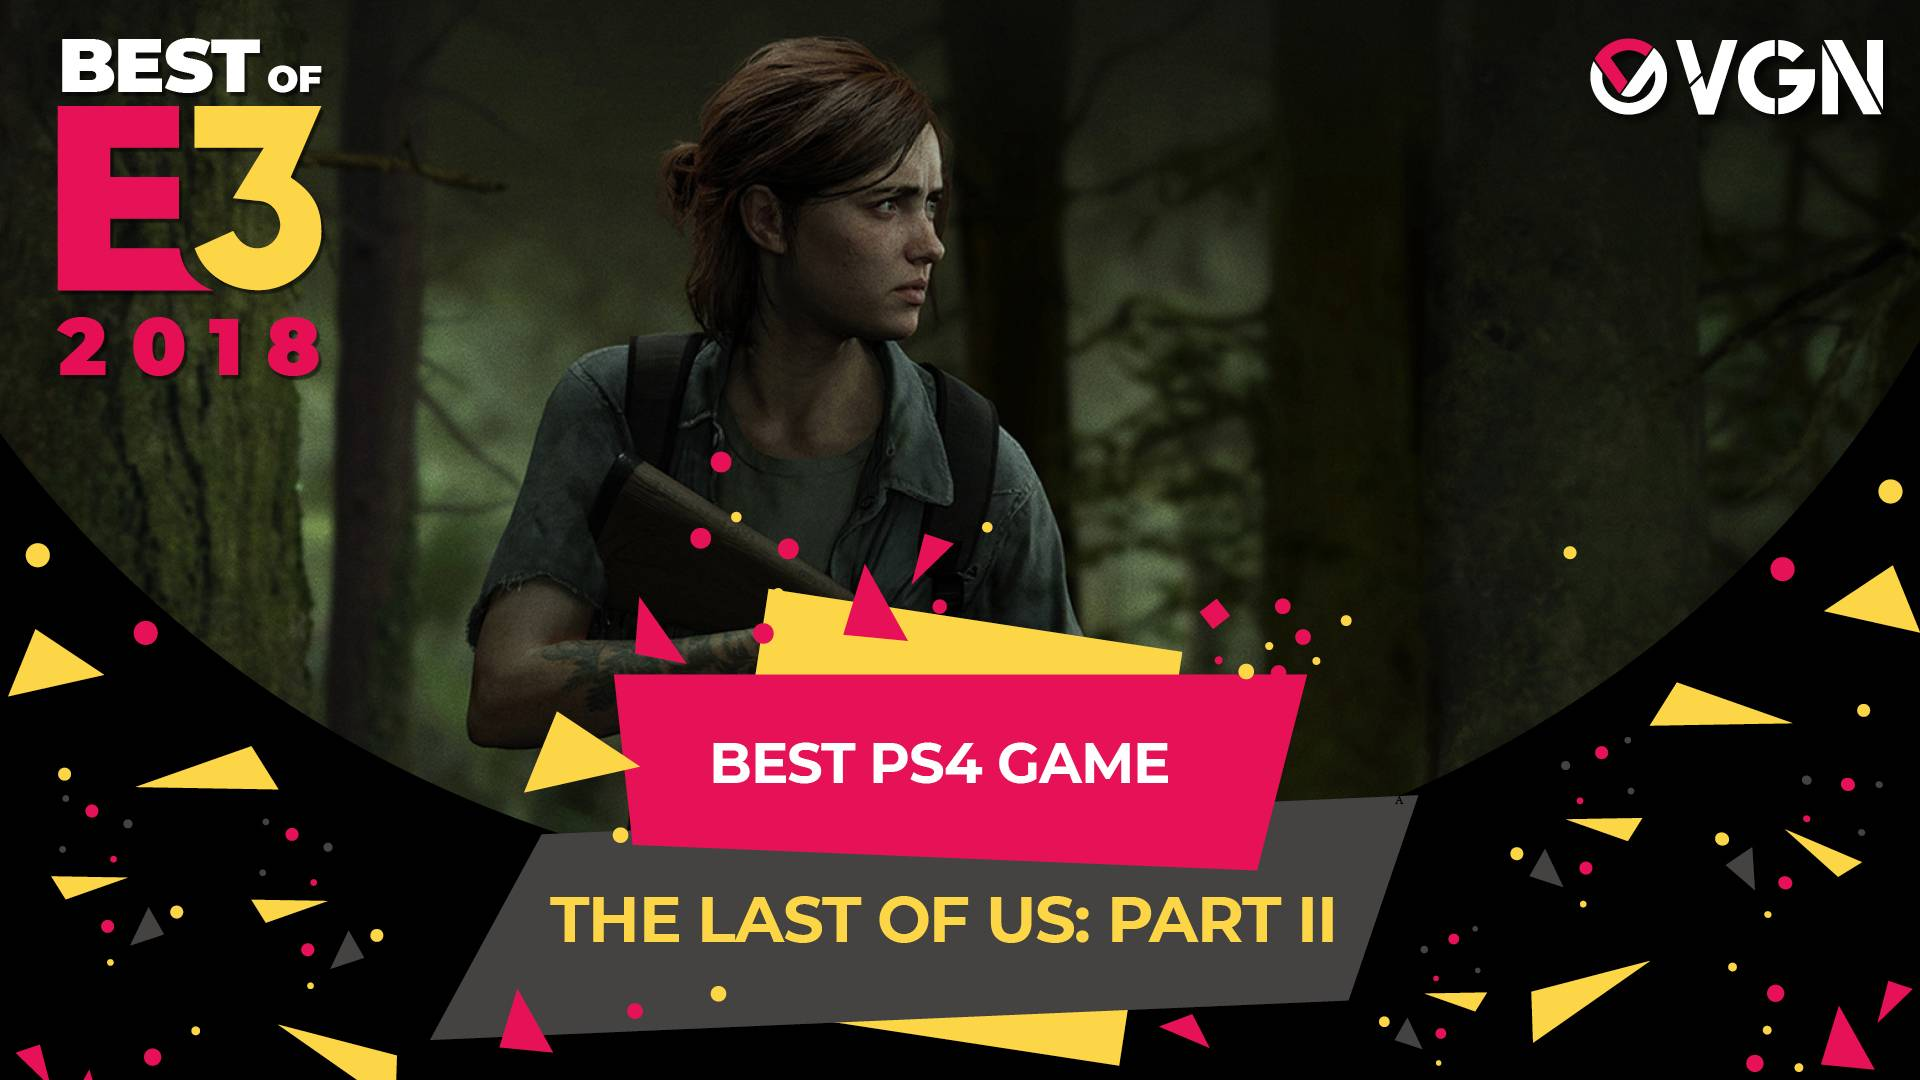 E3 2018 - Best PS4 Game - The Last of Us Part 2